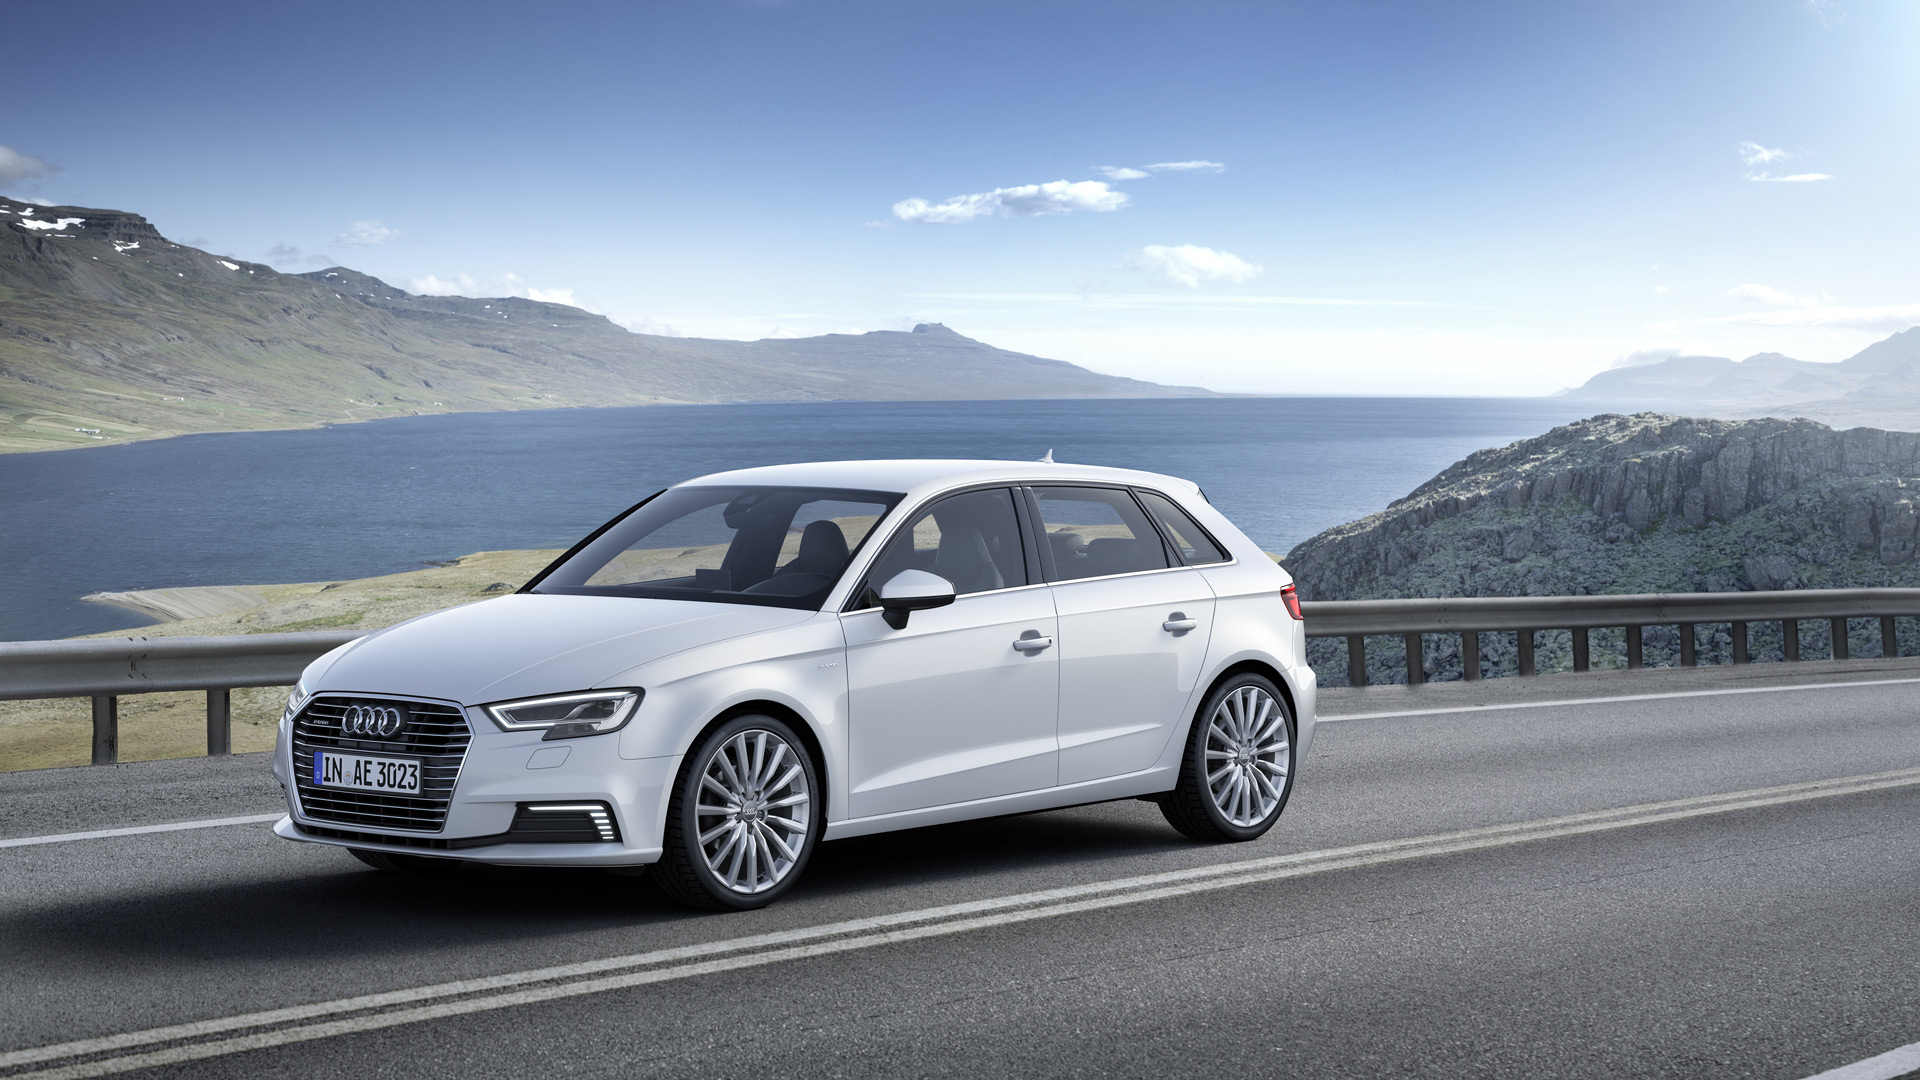 Amazing Audi A3 Pictures & Backgrounds